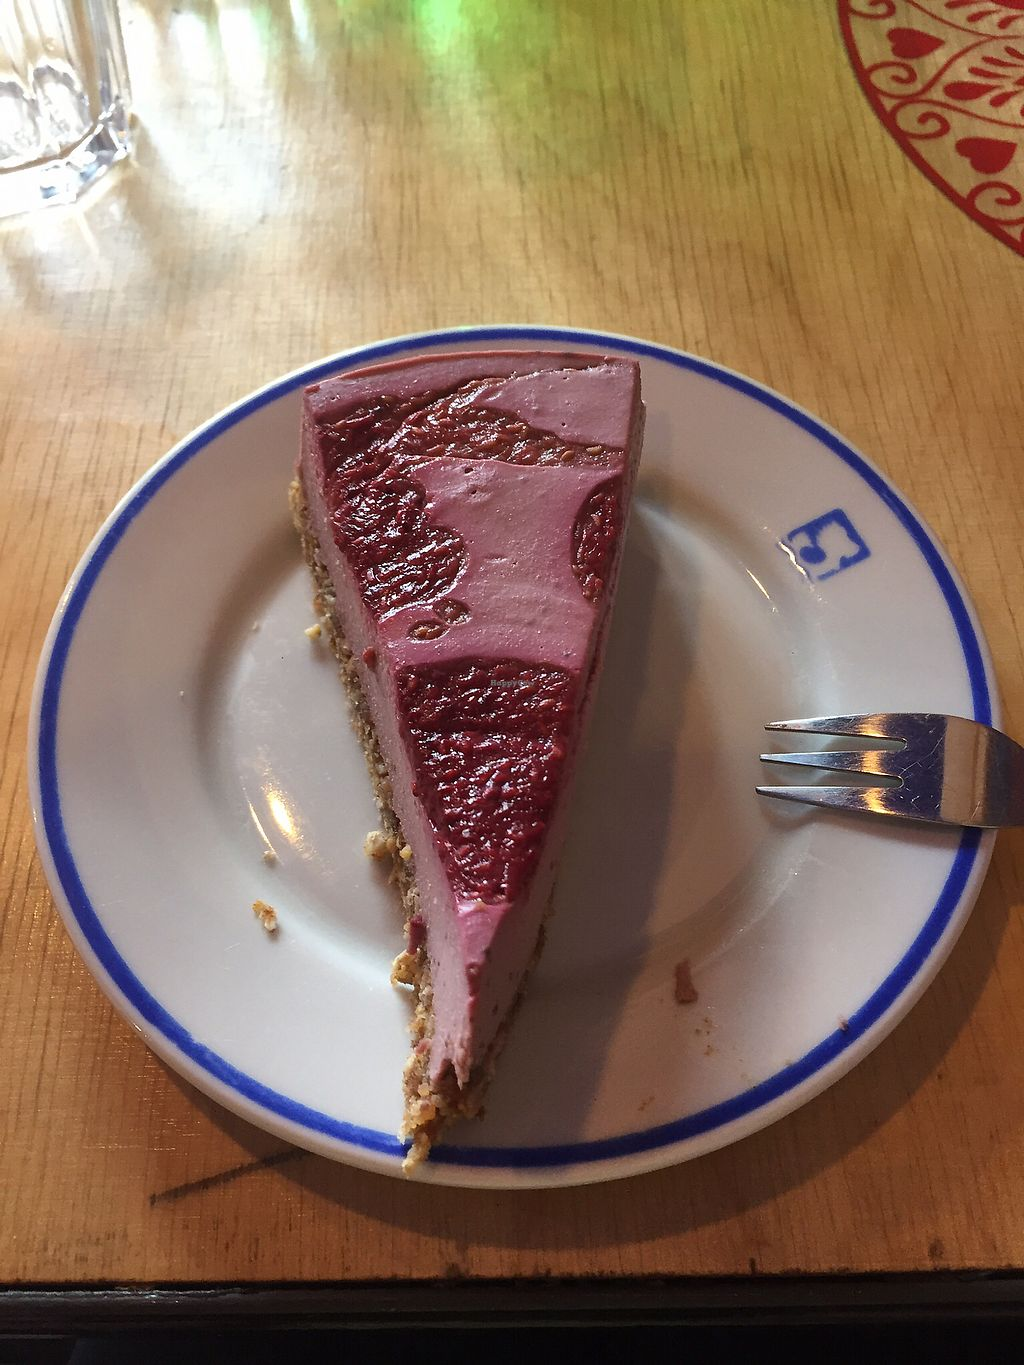 """Photo of Vege Bistro - Polish Vegan Food  by <a href=""""/members/profile/Sophiapalmqvist"""">Sophiapalmqvist</a> <br/>raspberry cheesecake <br/> August 12, 2017  - <a href='/contact/abuse/image/58057/291940'>Report</a>"""